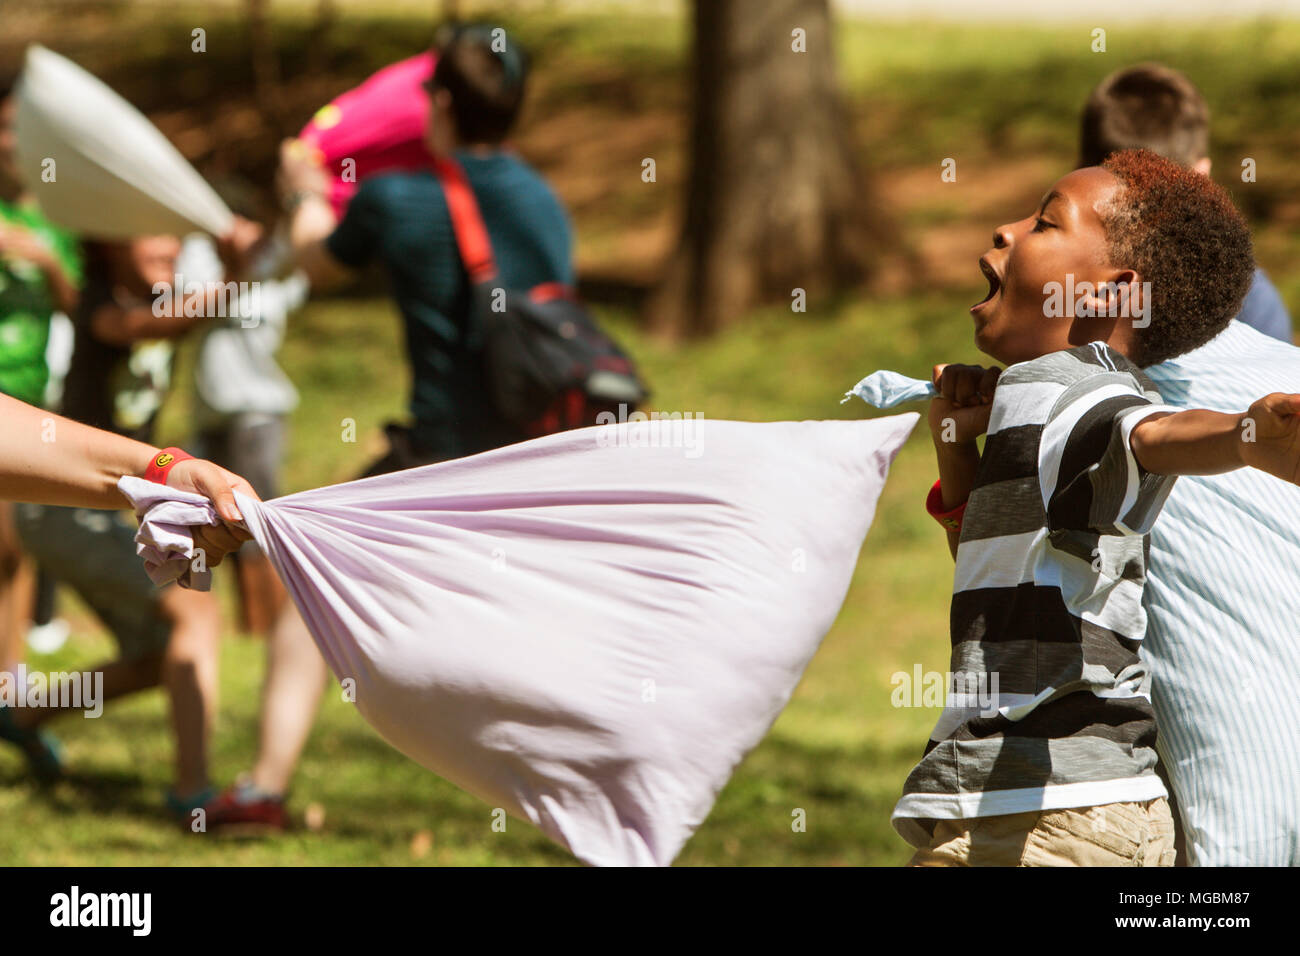 A child avoids being hit by a pillow while taking part in International Pillow Fight Day at Grant Park on April 1, 2017 in Atlanta, GA. - Stock Image